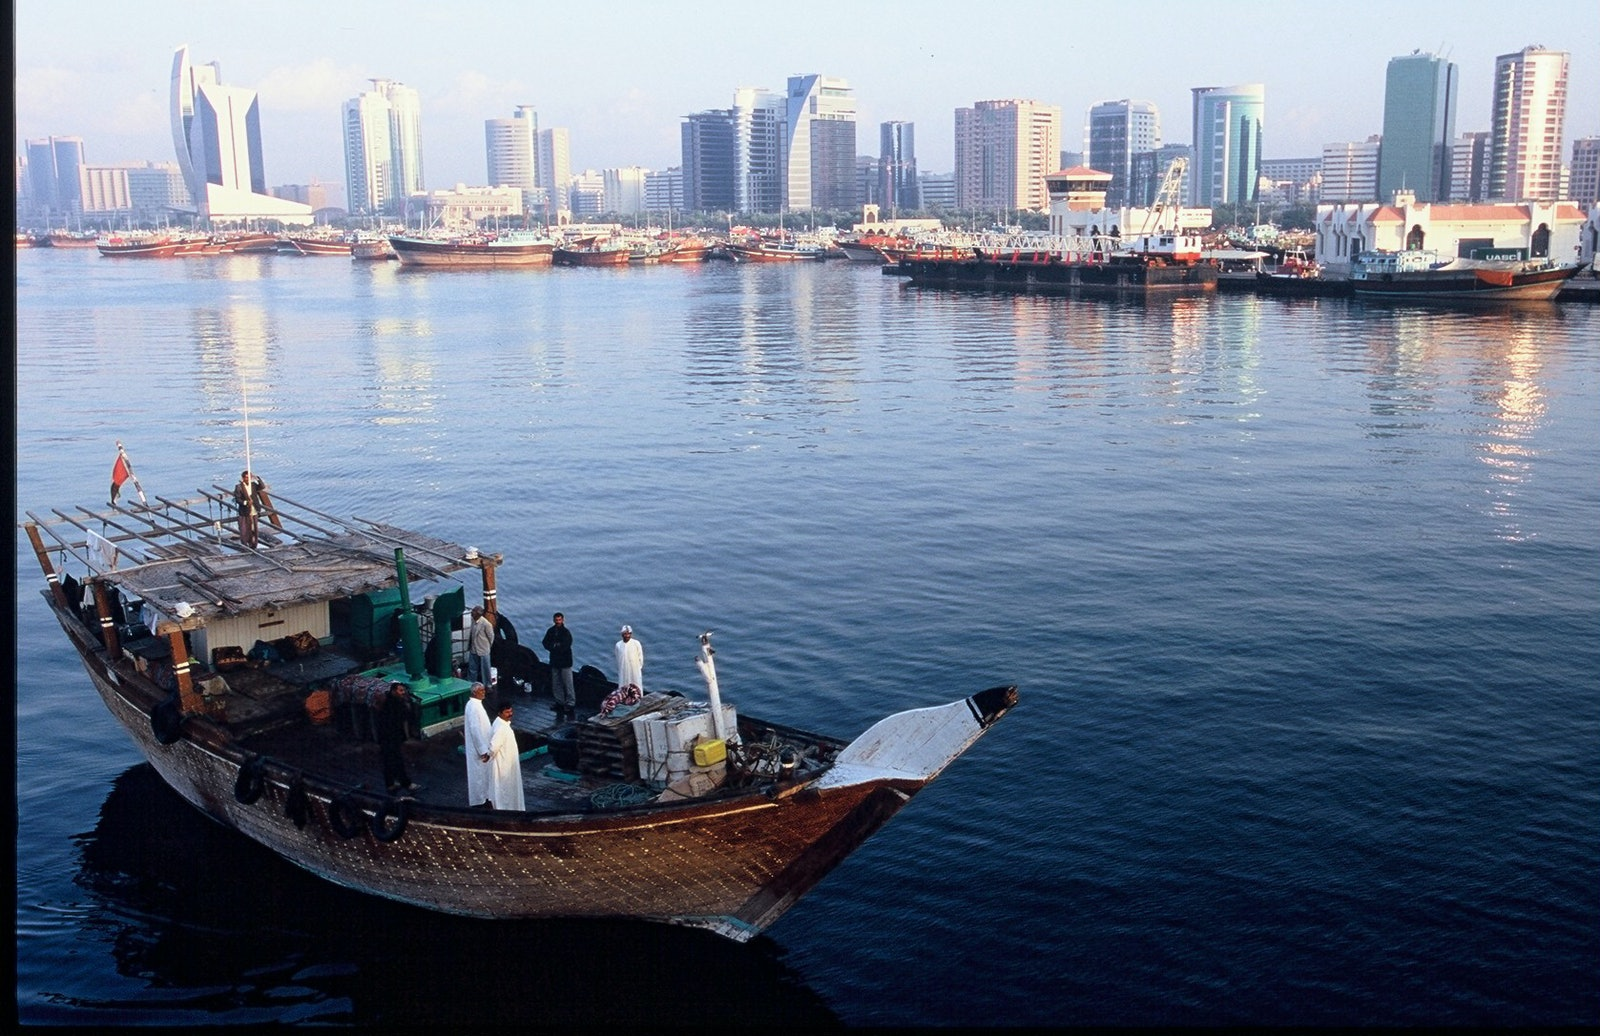 On The Way. - A Dhow (a Middle Eastern Cargo Ship) leaves the Dubai harbor (locally known as the creek) on its way to Pakistan to pick up goods to be delivered...